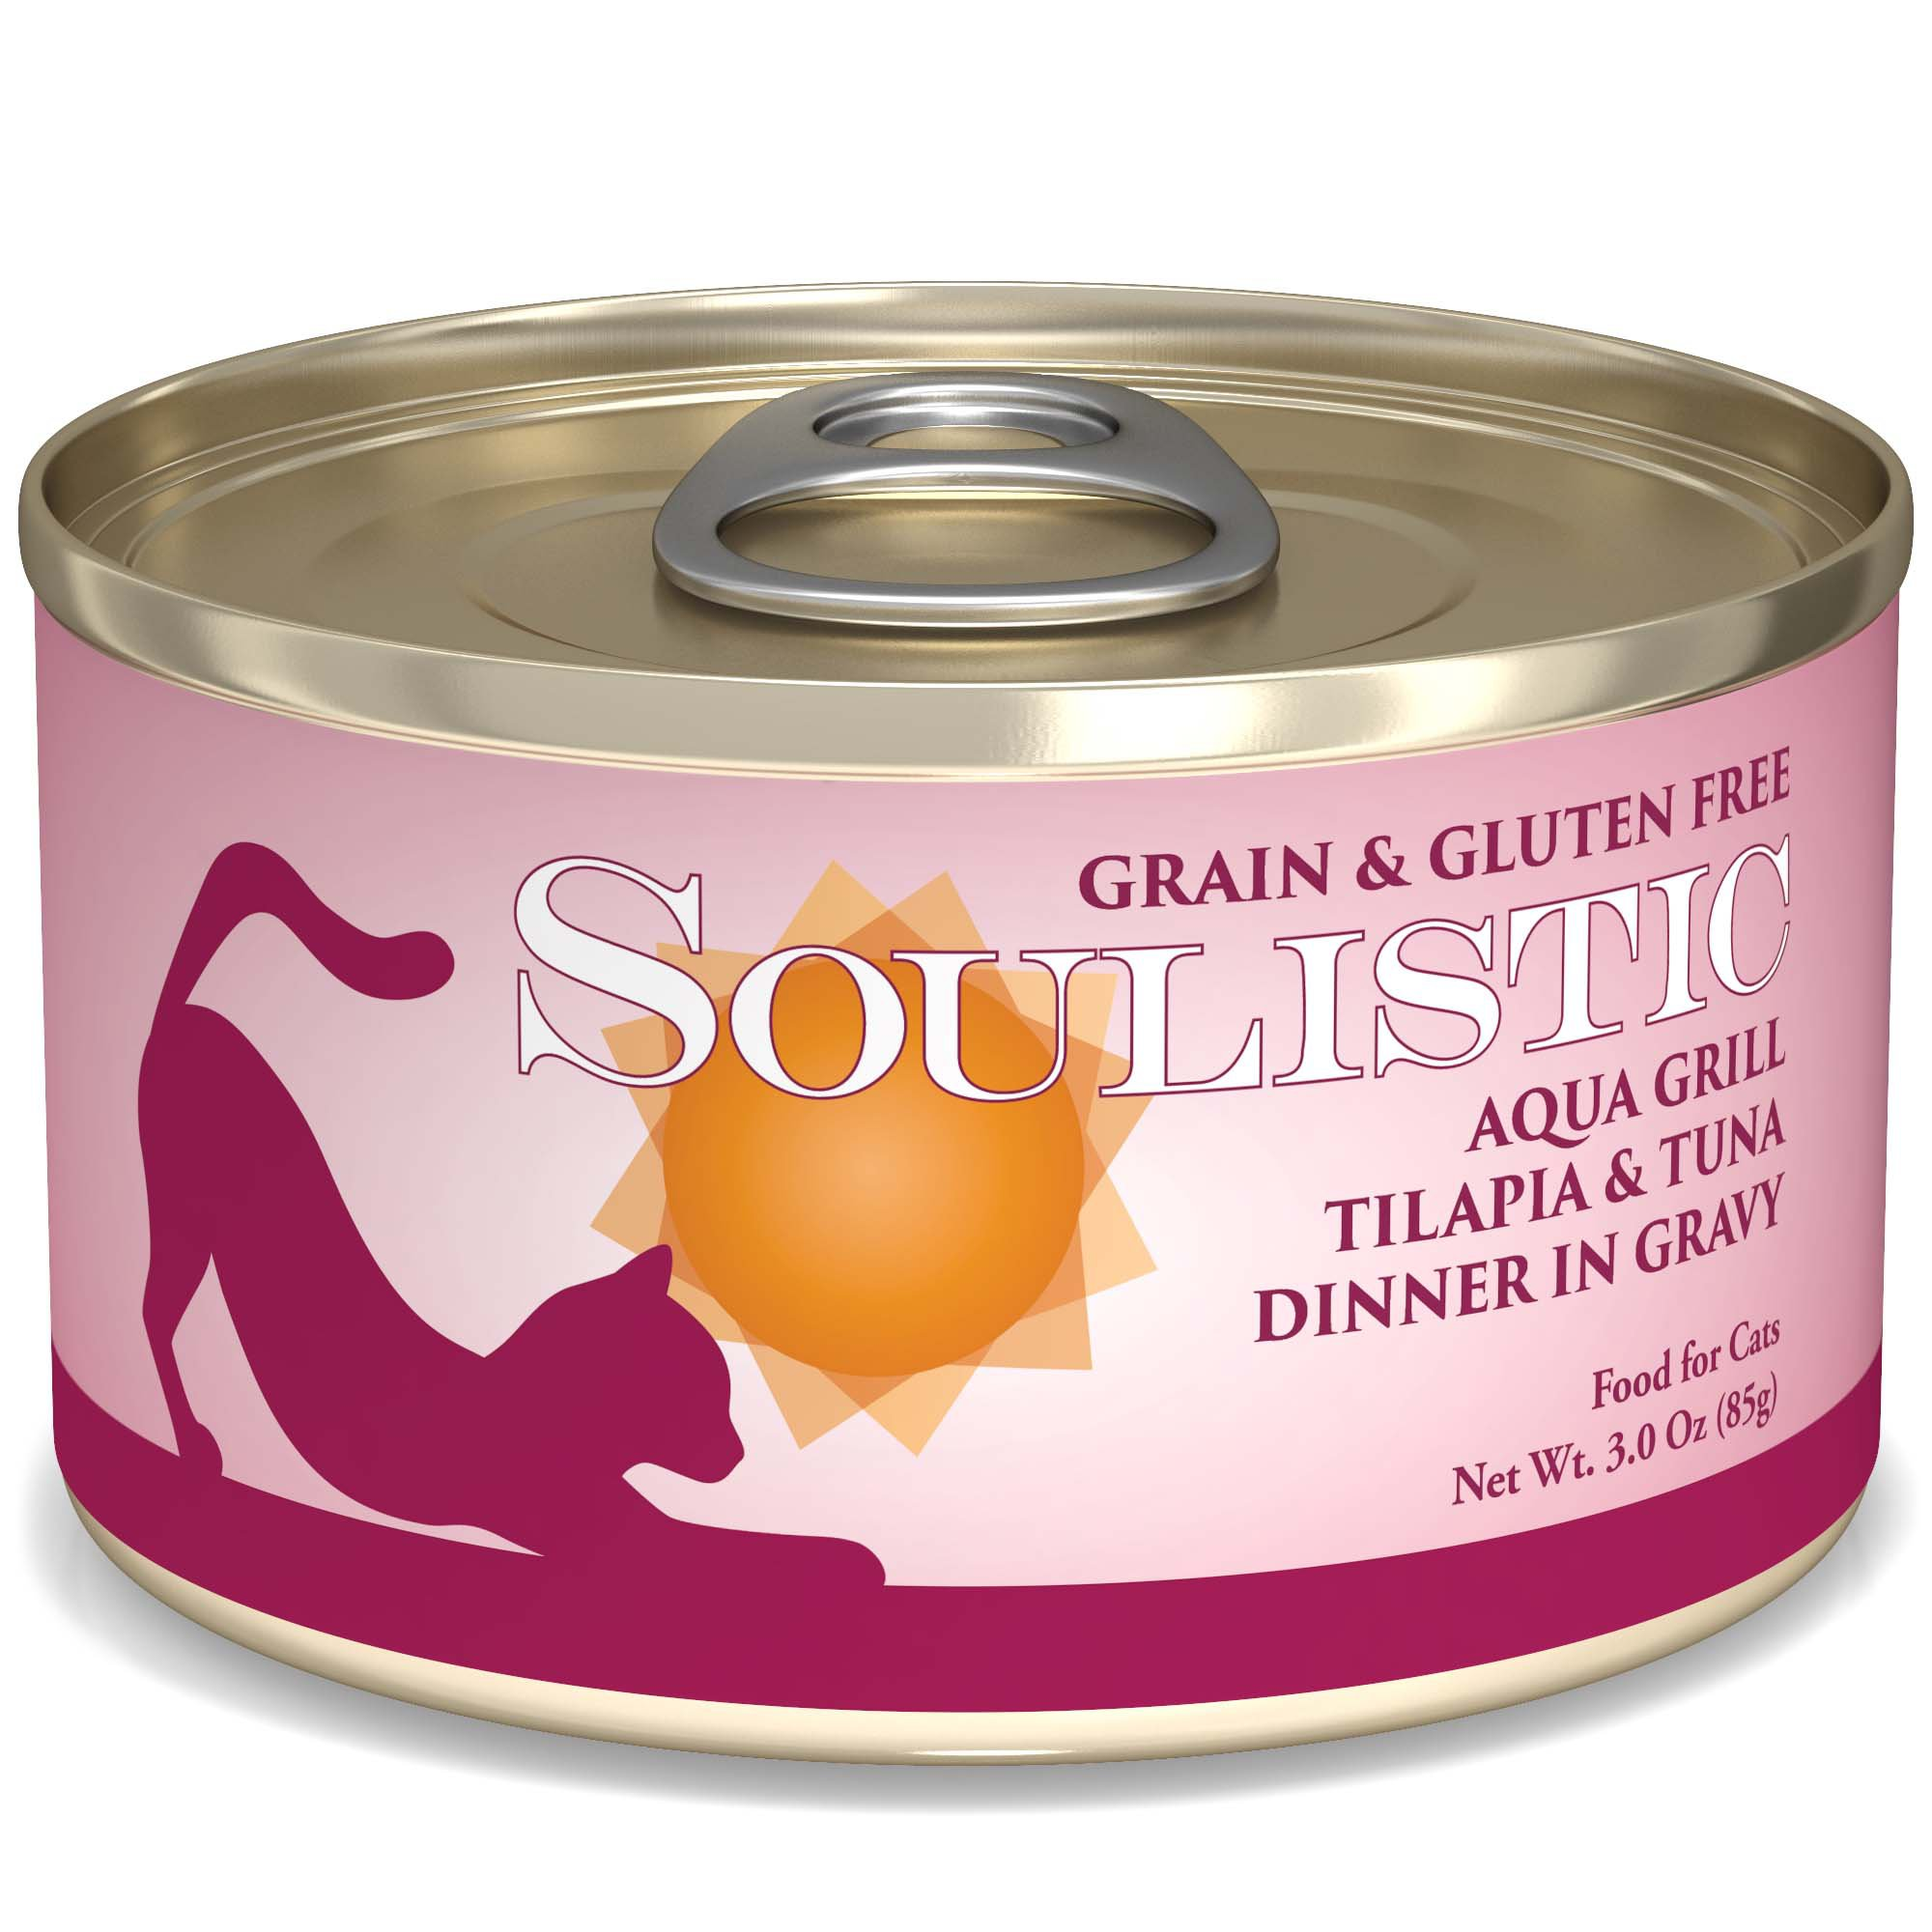 Soulistic Aqua Grill Tilapia & Tuna Dinner Adult Canned Cat Food in Gravy